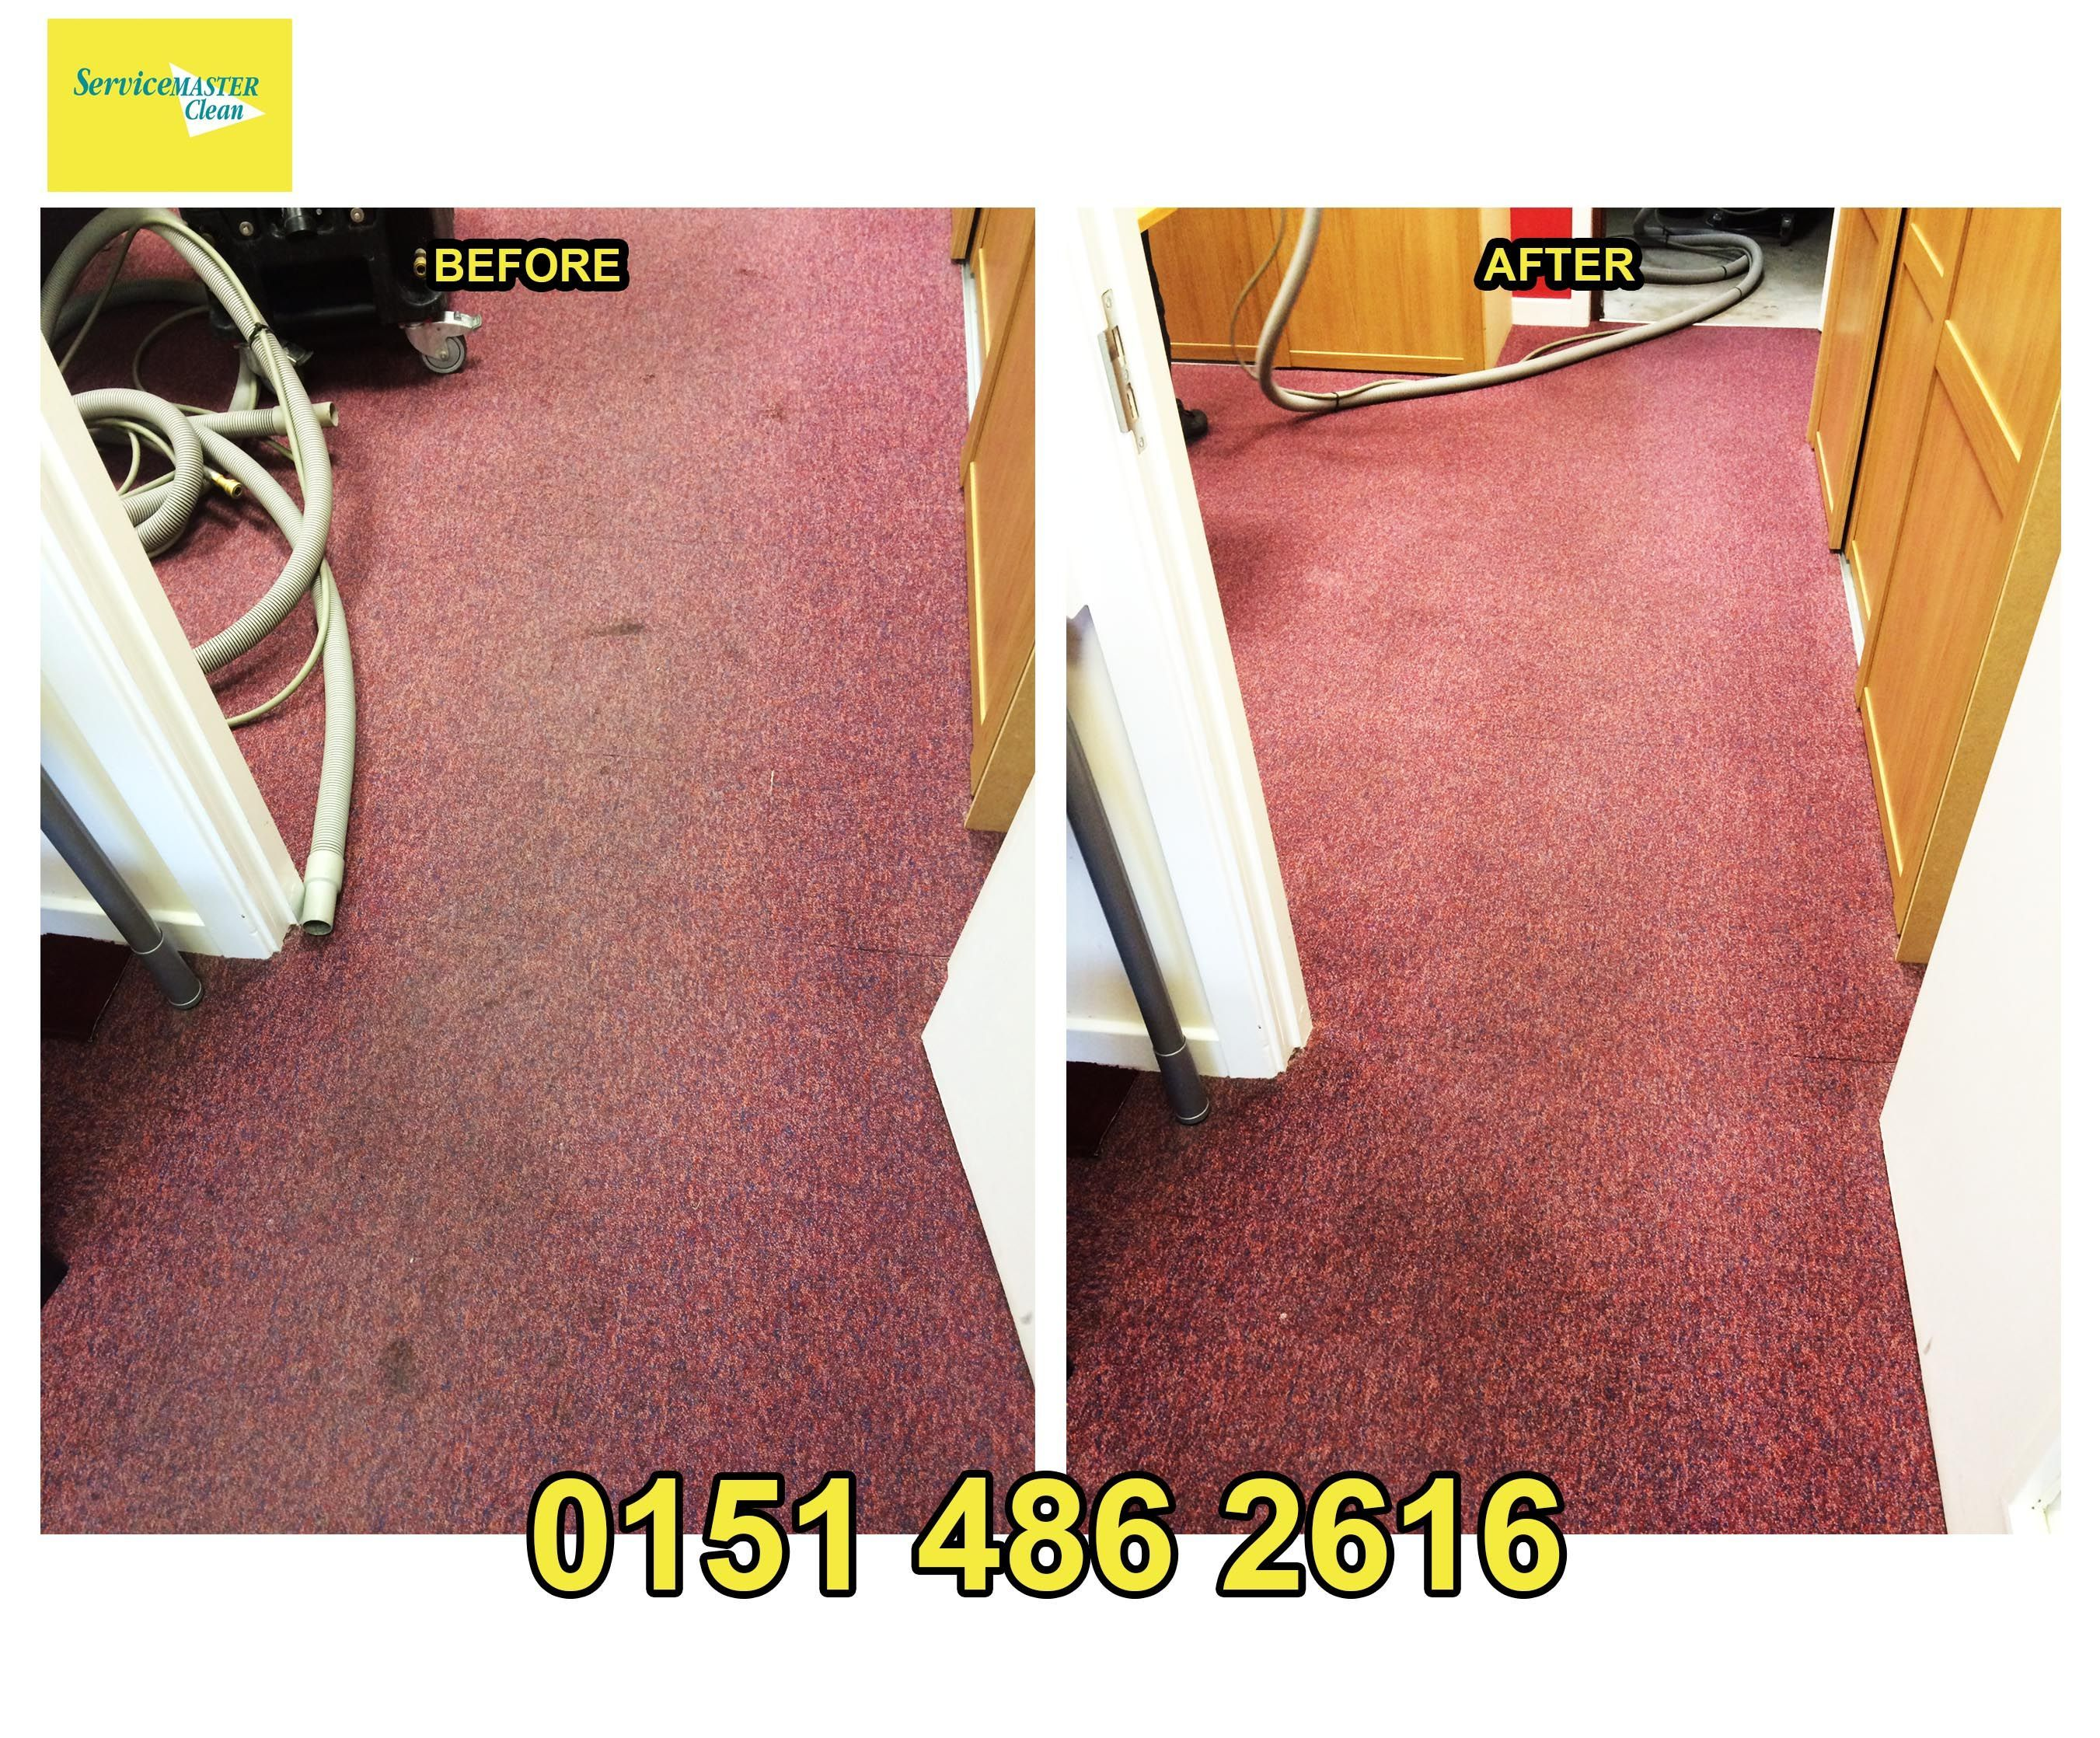 Easy Carpet Cleaning Baking Soda Hydrogen Peroxide Funny House Quotes Floors Homemade Stain